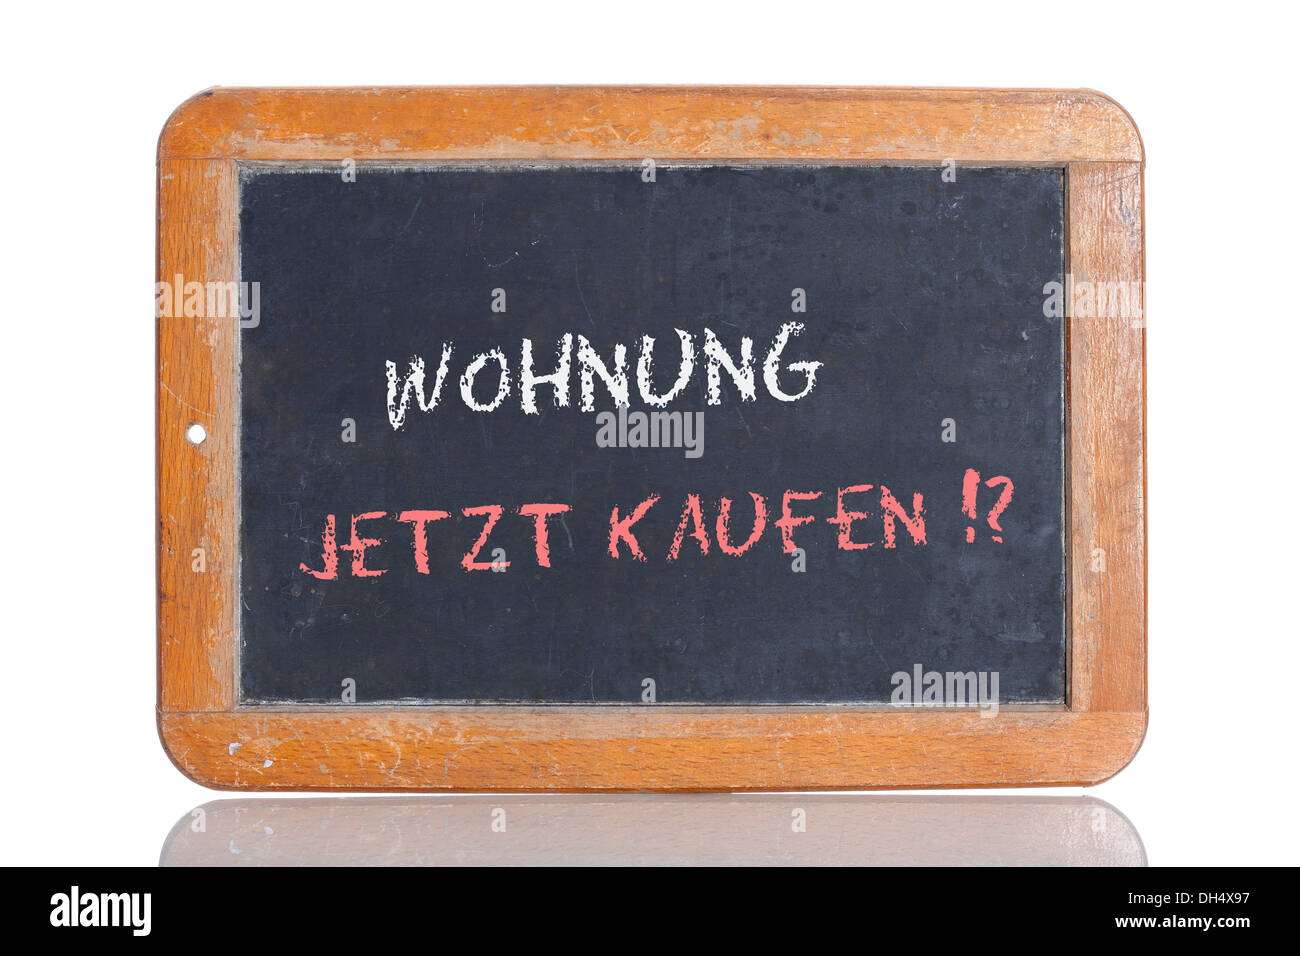 Old school blackboard with the words WOHNUNG JETZT KAUFEN!?, German for Buy an apartment now!? - Stock Image